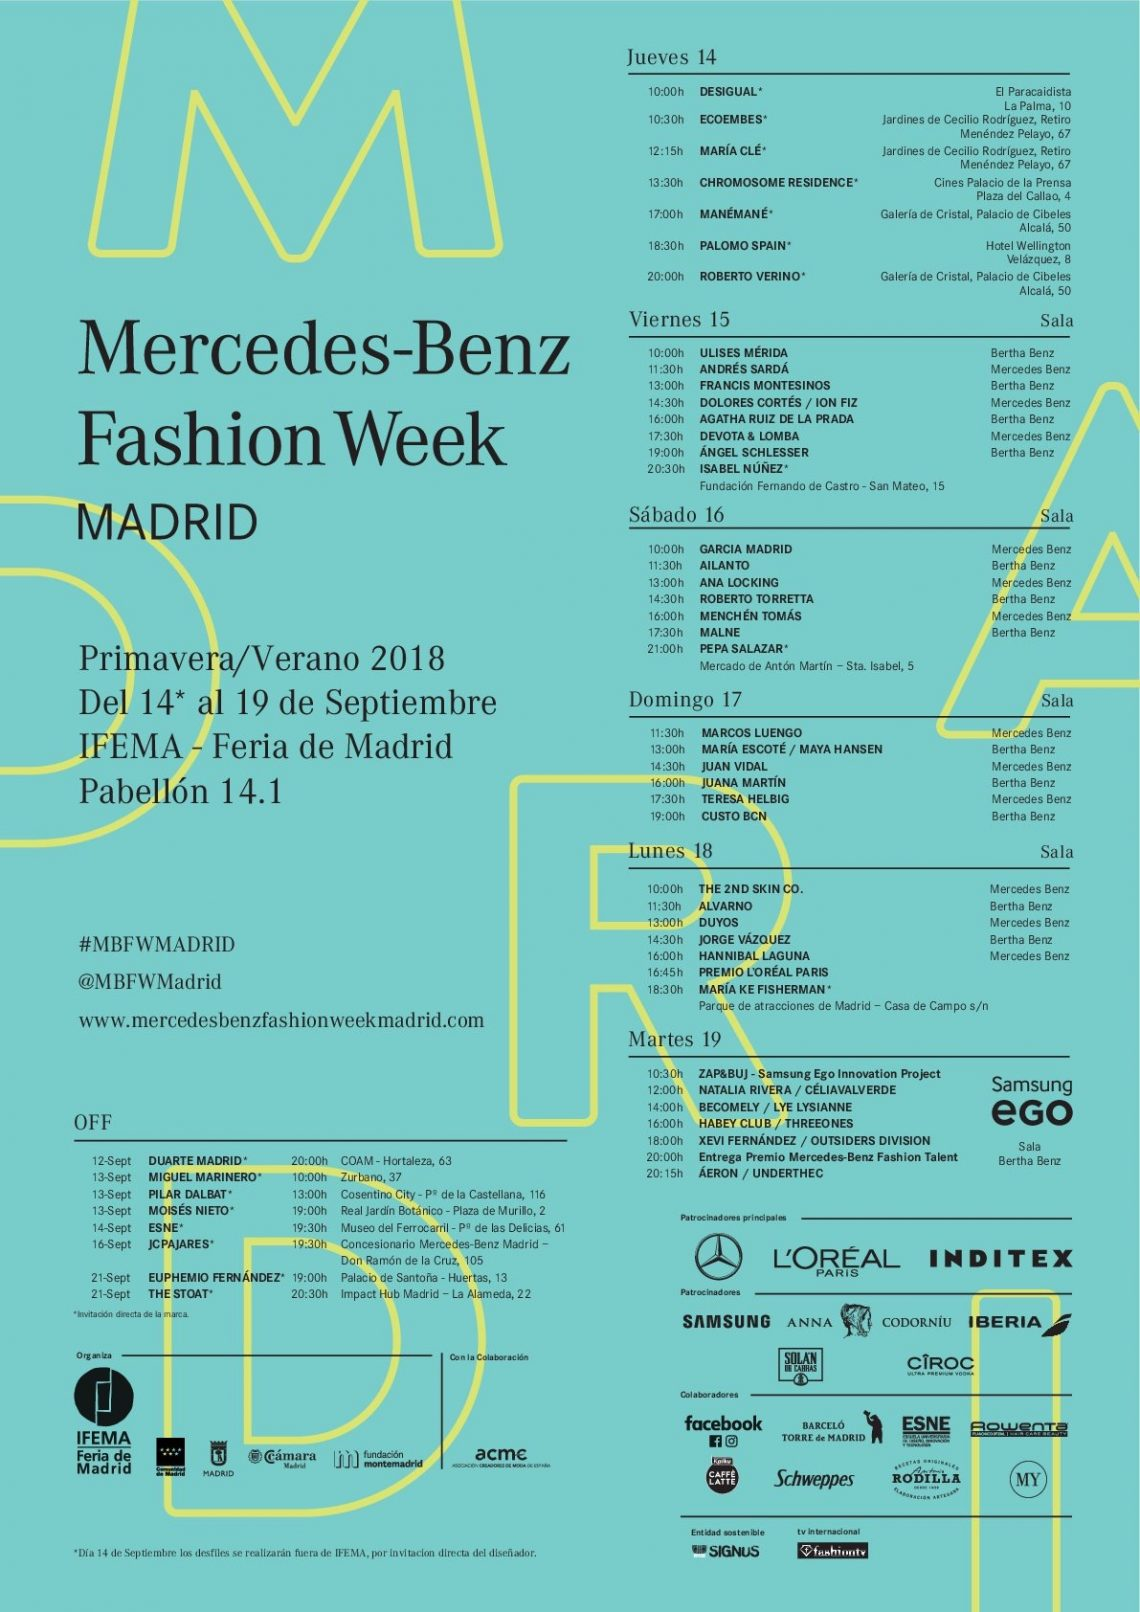 #Concurso La Universidad Francisco de Vitoria y Living Backstage te invitan a un desfile de Mercedes-Benz Fashion Week Madrid